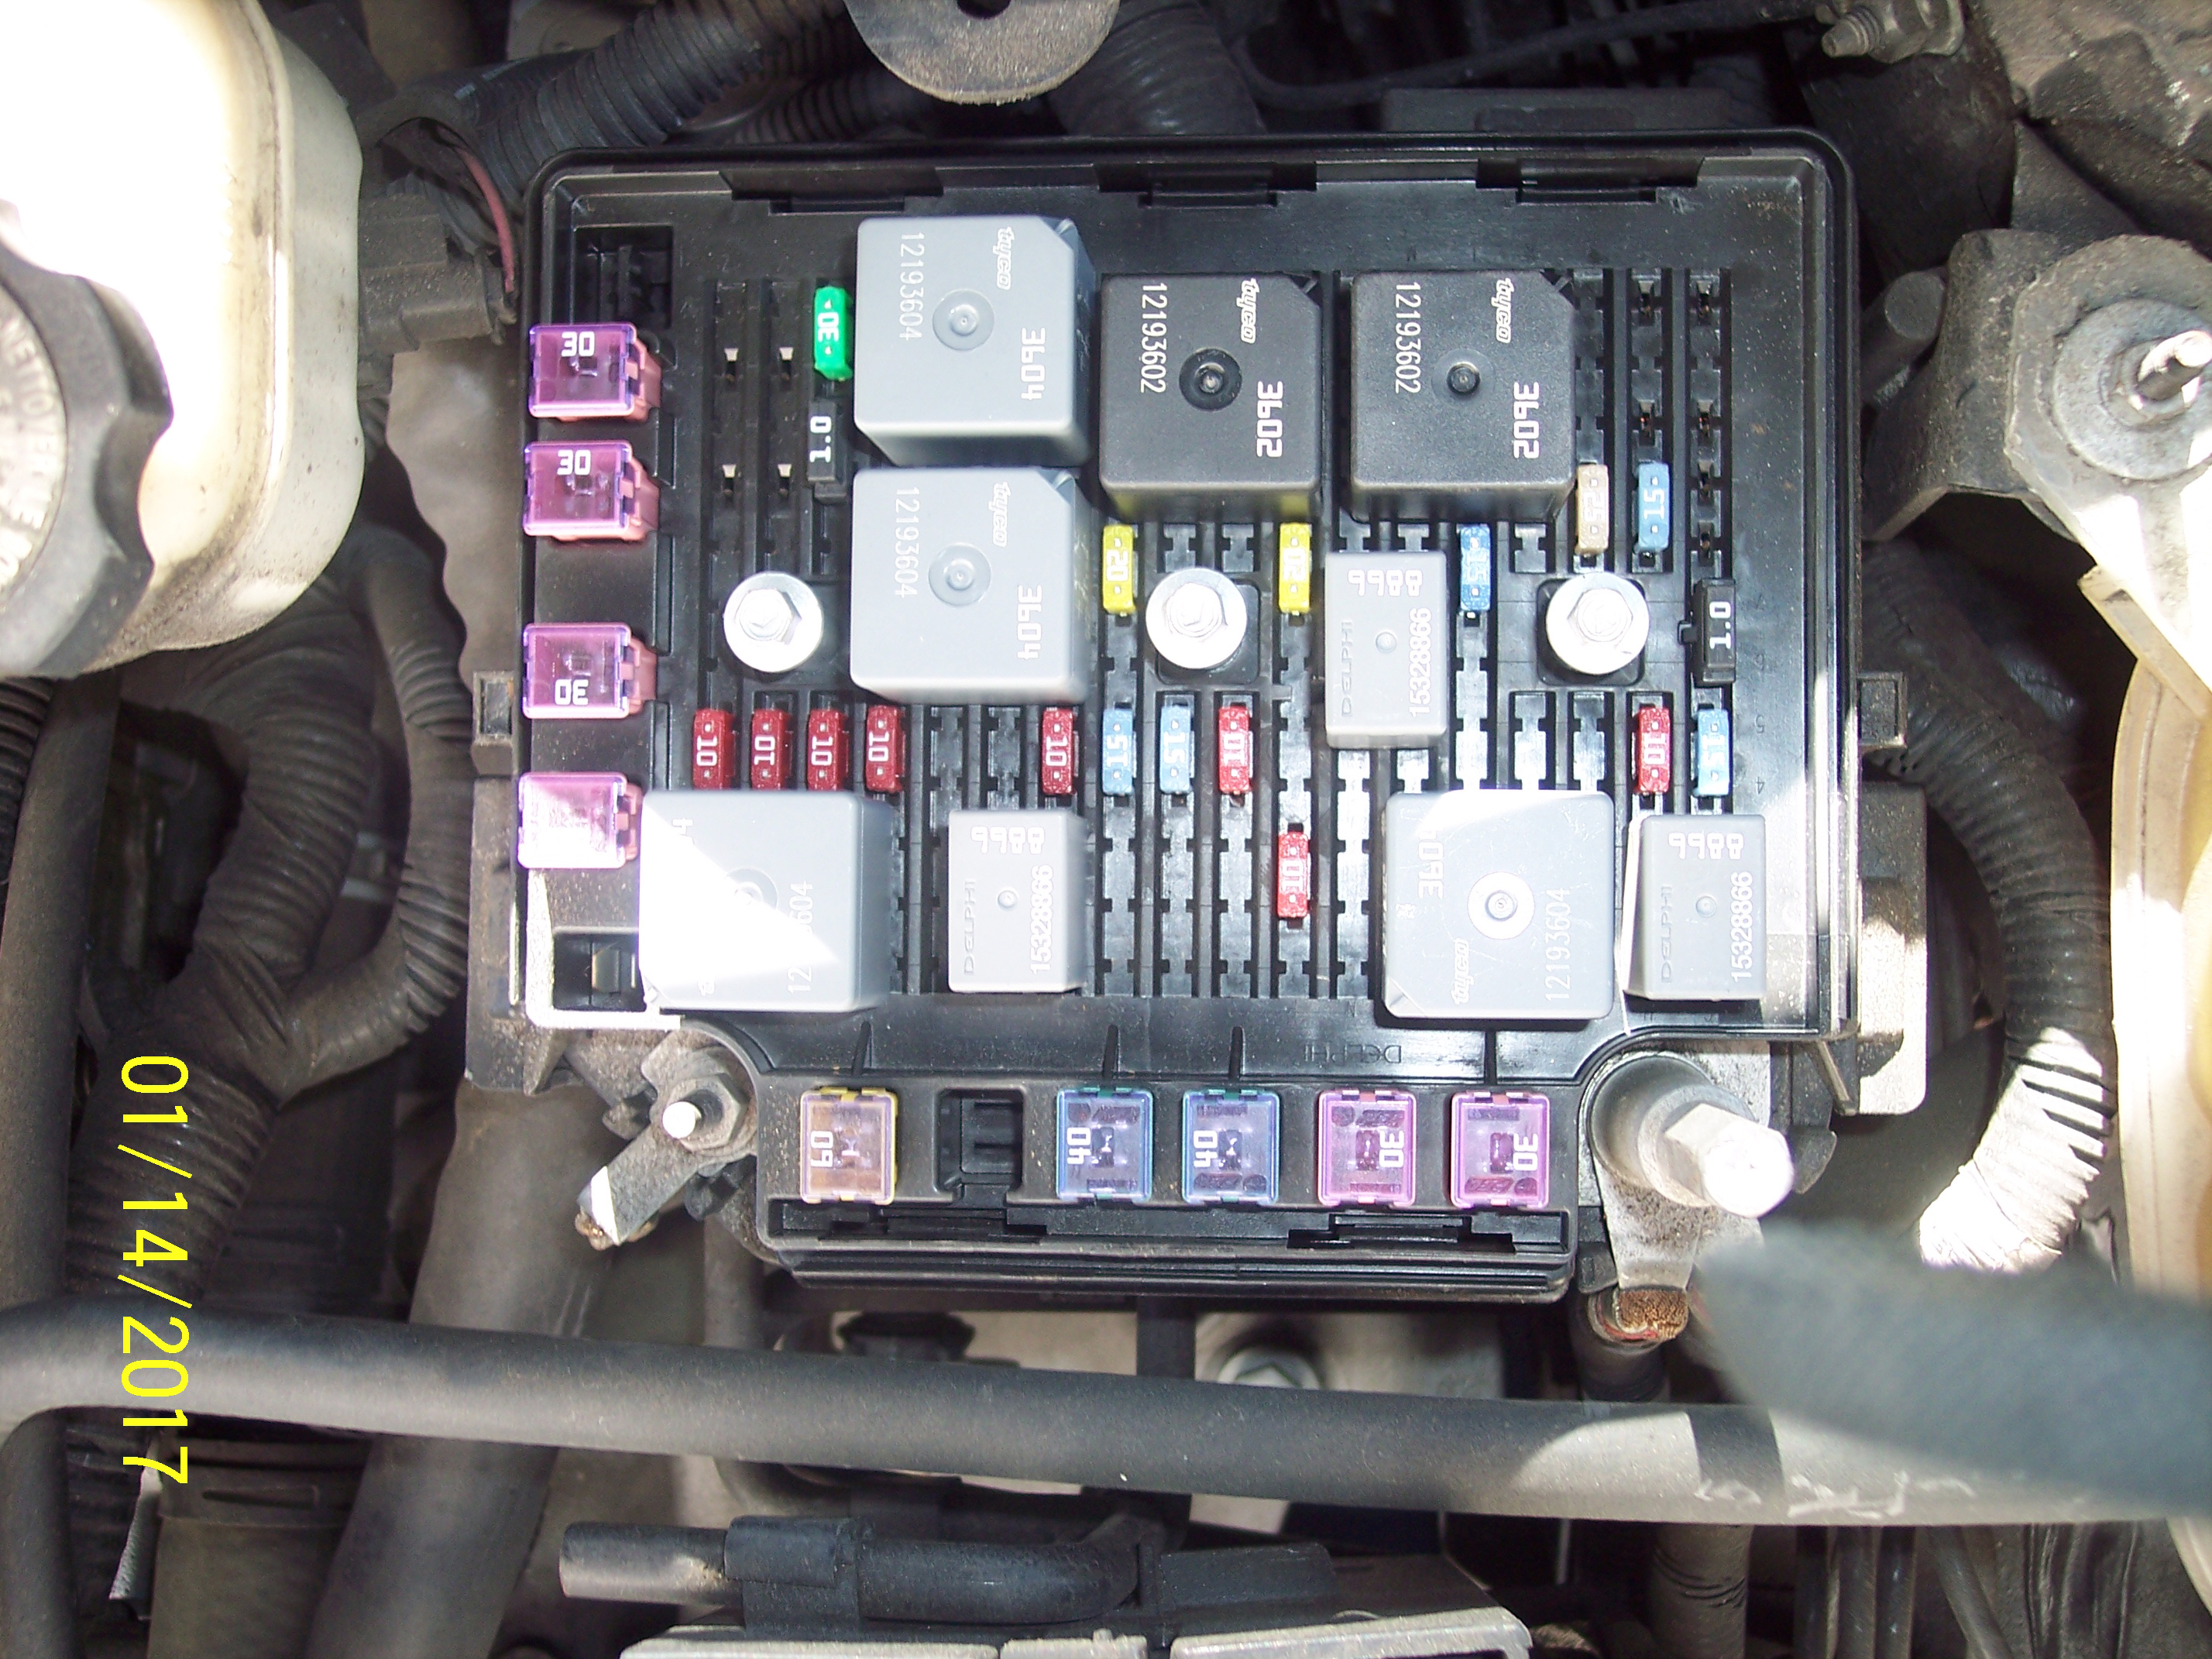 2007 saturn ion wiring diagram gs 0633  fuse box on saturn ion  gs 0633  fuse box on saturn ion